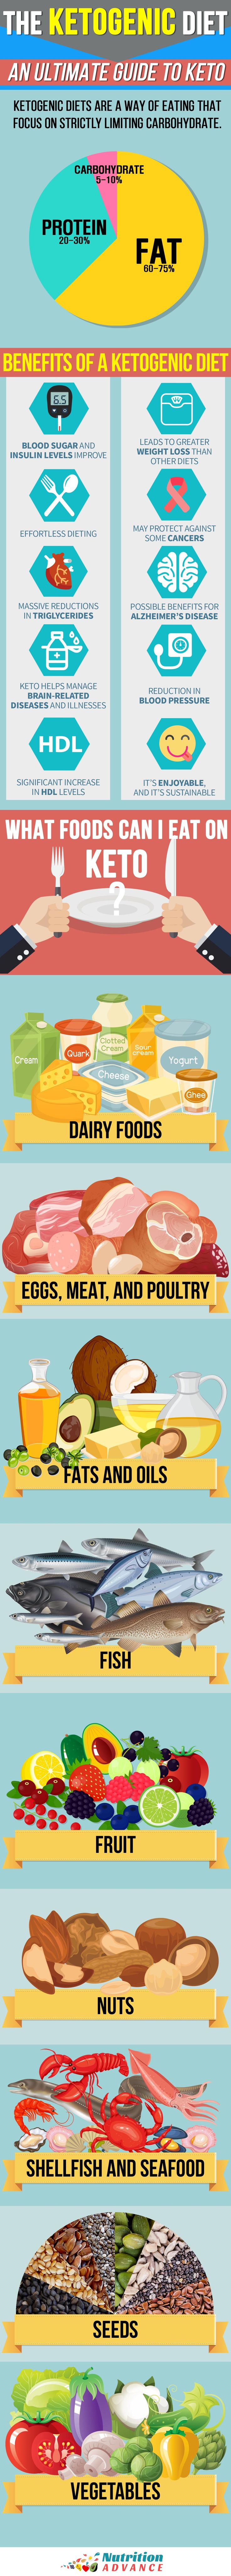 The Ketogenic Diet: What are the health benefits of keto? And what kind of foods can you eat? This infographic covers the main points behind the popular low carb diet plan. You can read more at http://nutritionadvance.com/ketogenic-diet-ultimate-guide-to-keto